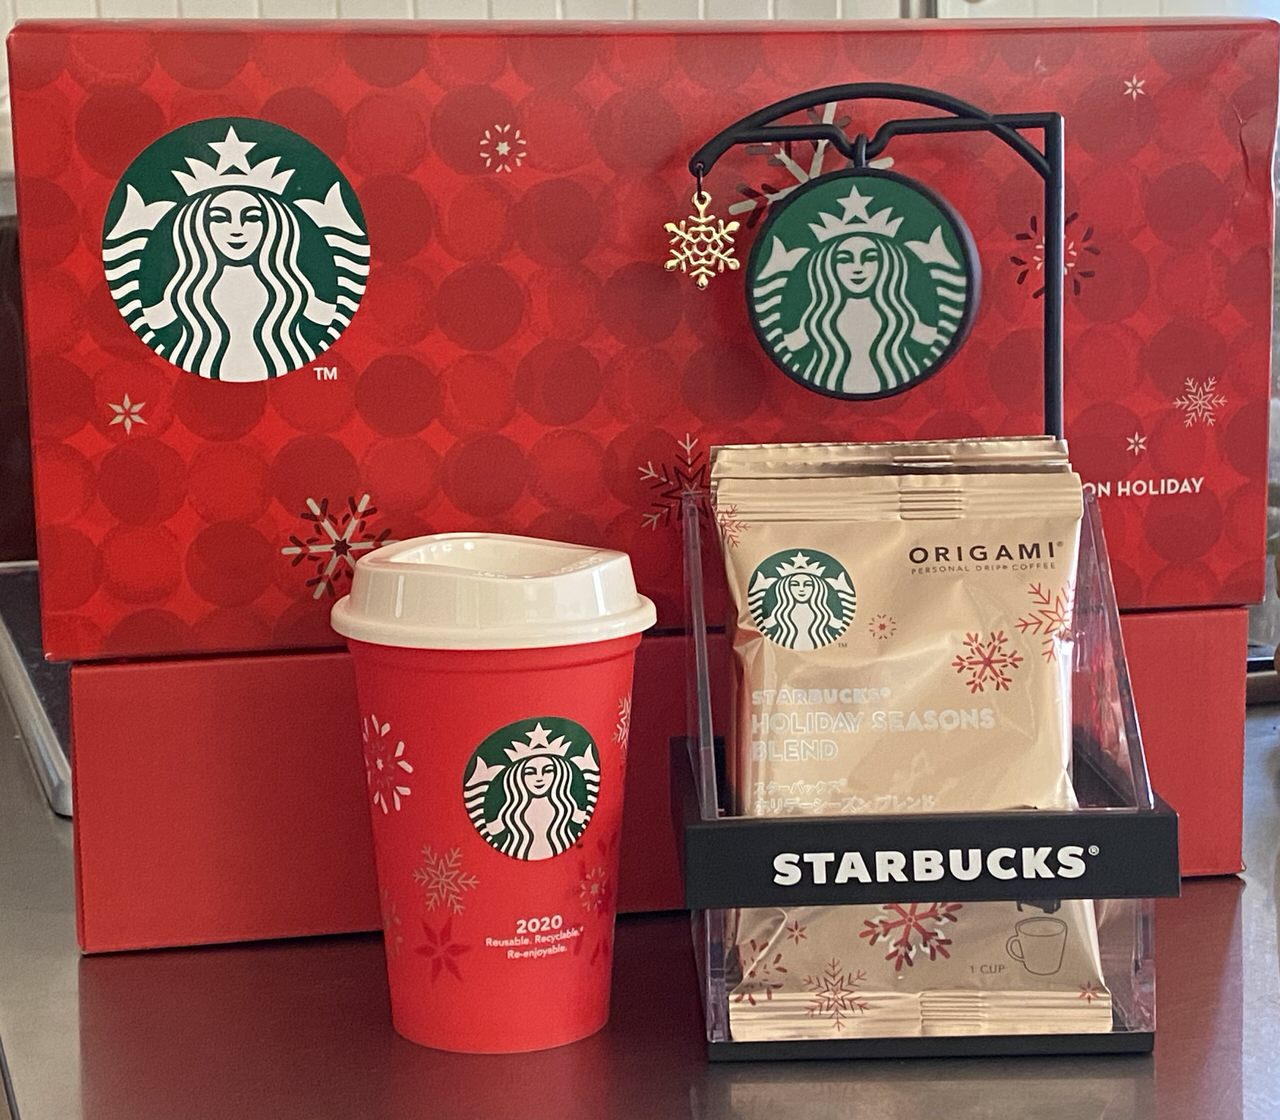 Starbucks winter holiday 202011 3